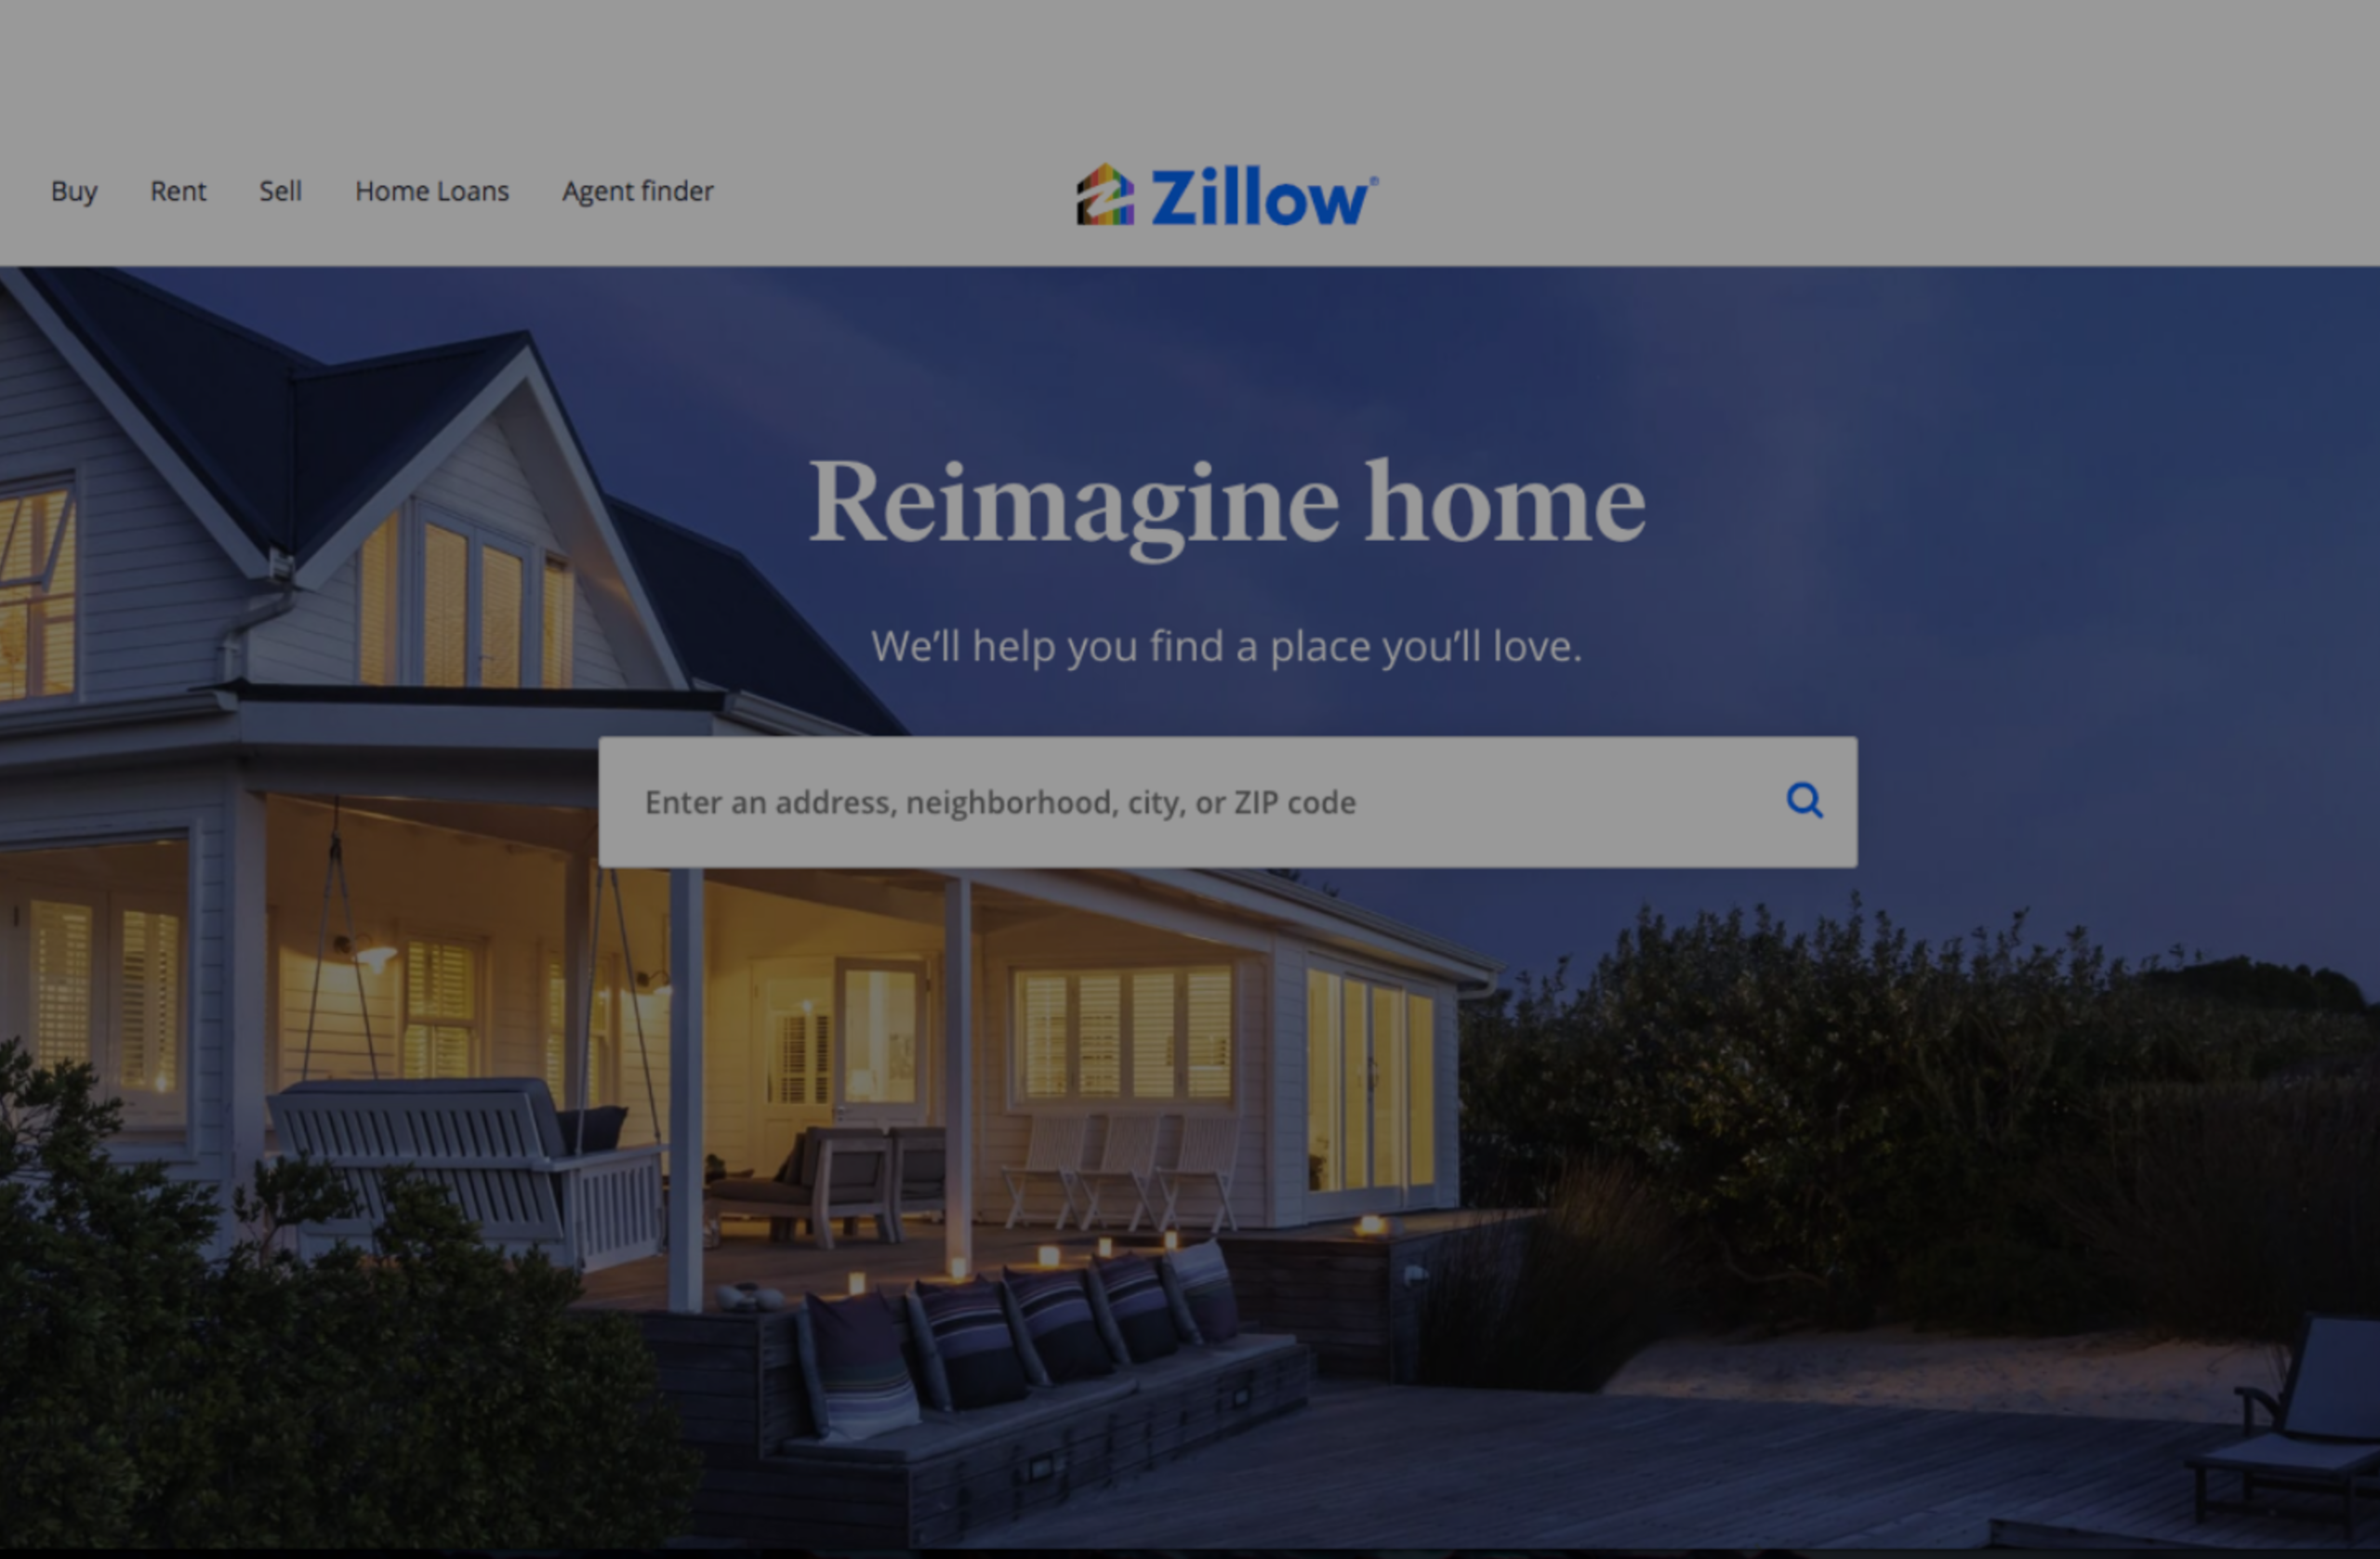 Homeowners: Why You Should Claim Your Home on Zillow